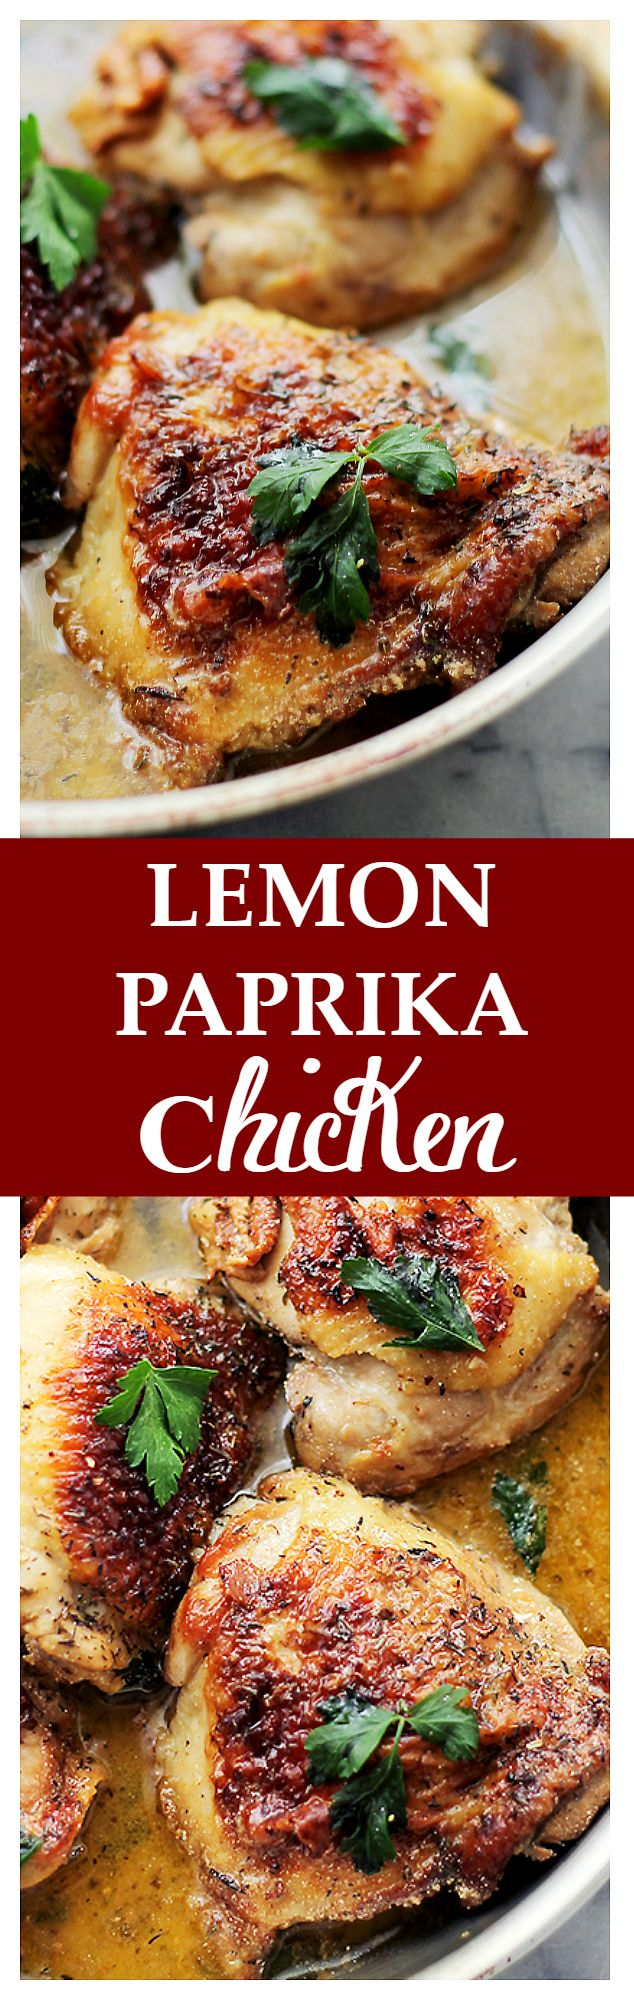 Lemon Paprika Chicken | www.diethood.com | Marinated in a lemon and paprika mixture with garlic and thyme, these incredible chicken thighs are quick and easy to make, and they are perfect for a weekni (Chicken Thighs)